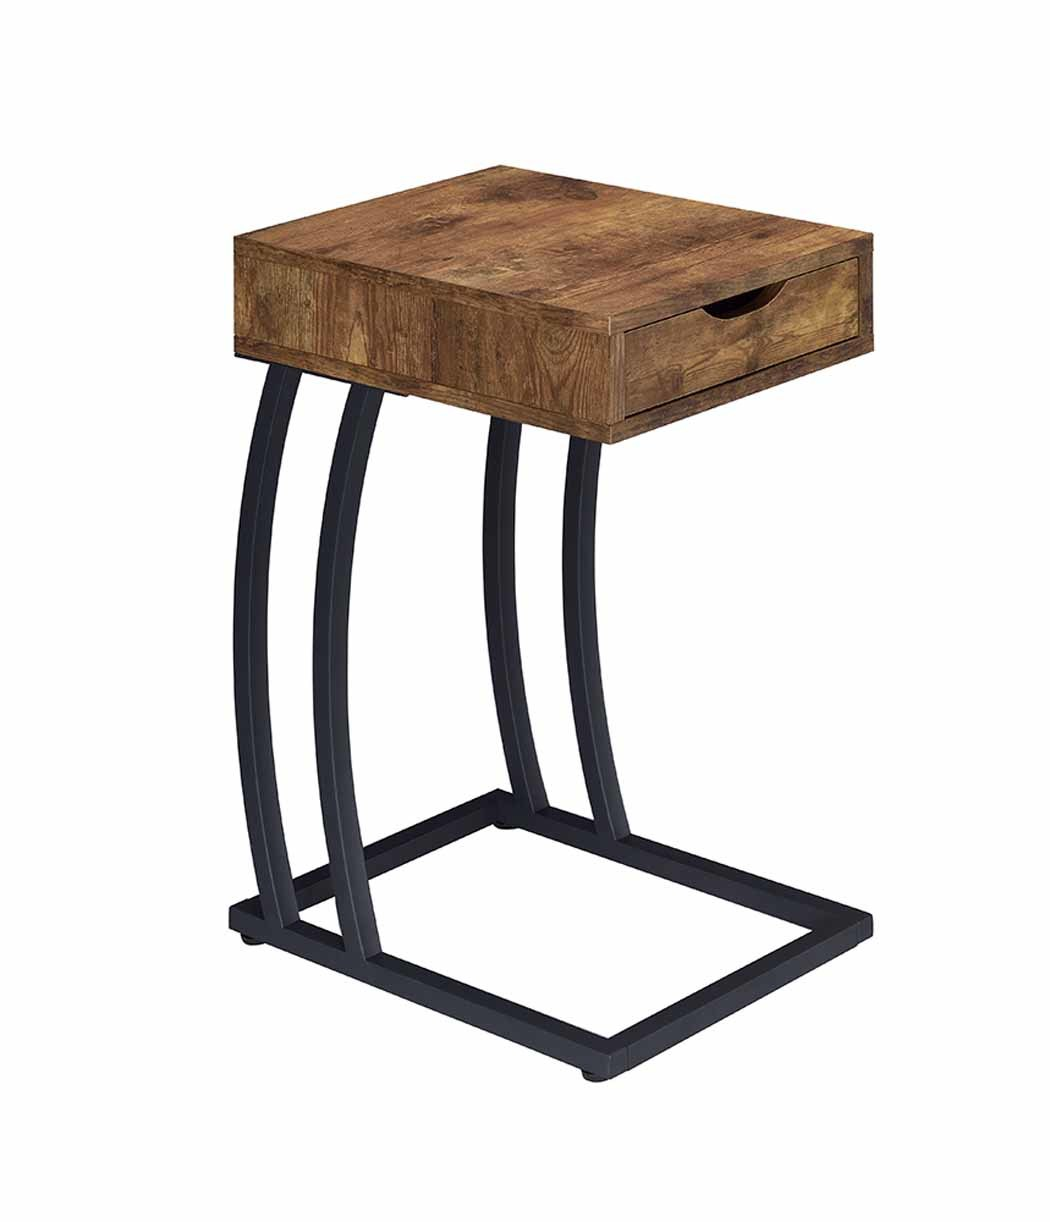 the industrial antique nutmeg accent table available mike floor length mirror white wine rack inch bedside lucite cube lamp with usb port coffee inexpensive round tablecloths